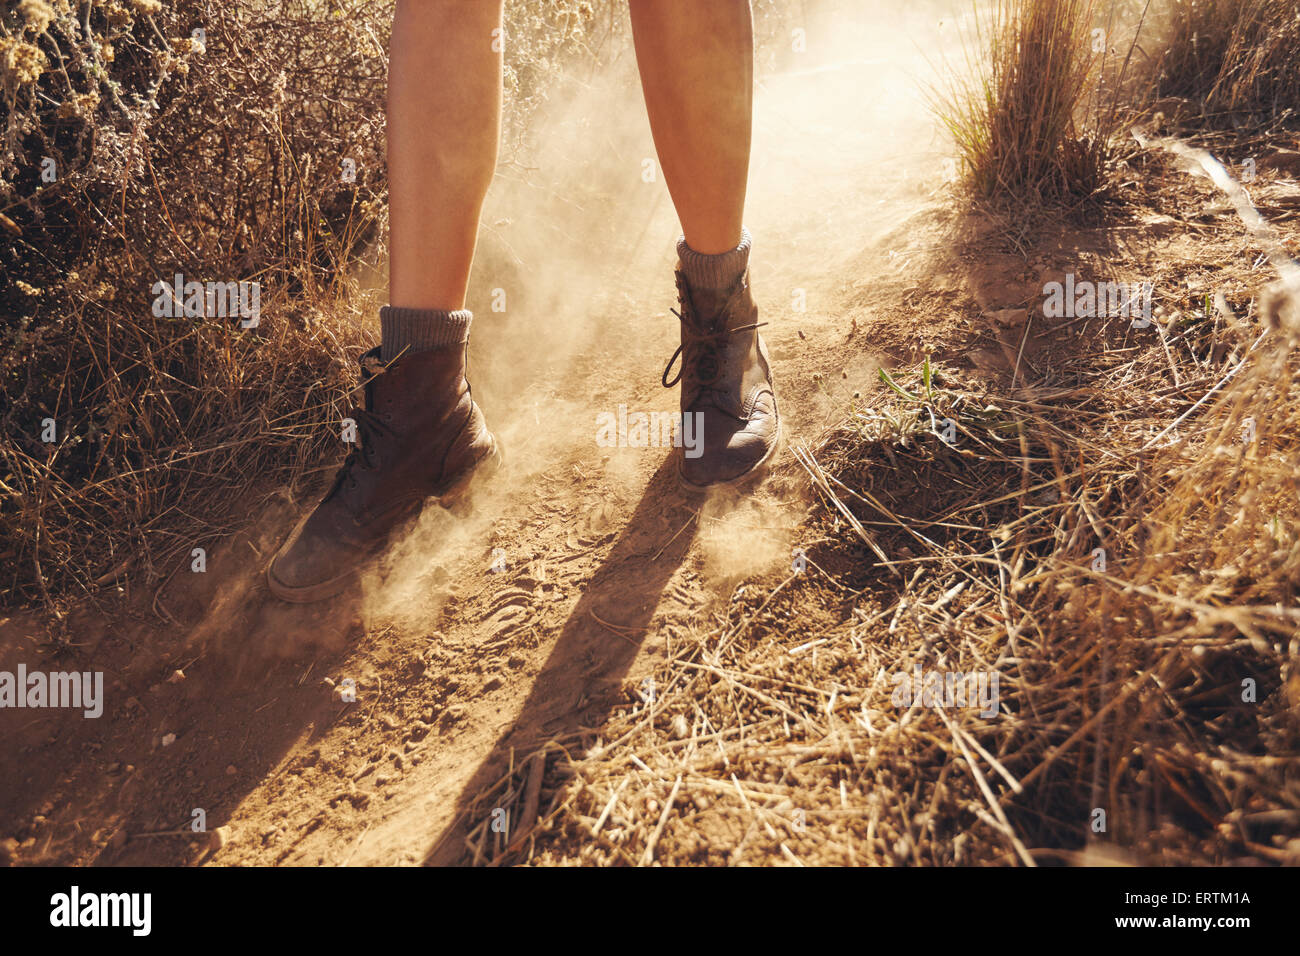 Young woman's feet as she hikes on a mountain trail with puff of dust. Woman hiking on dirt path in countryside. Stock Photo